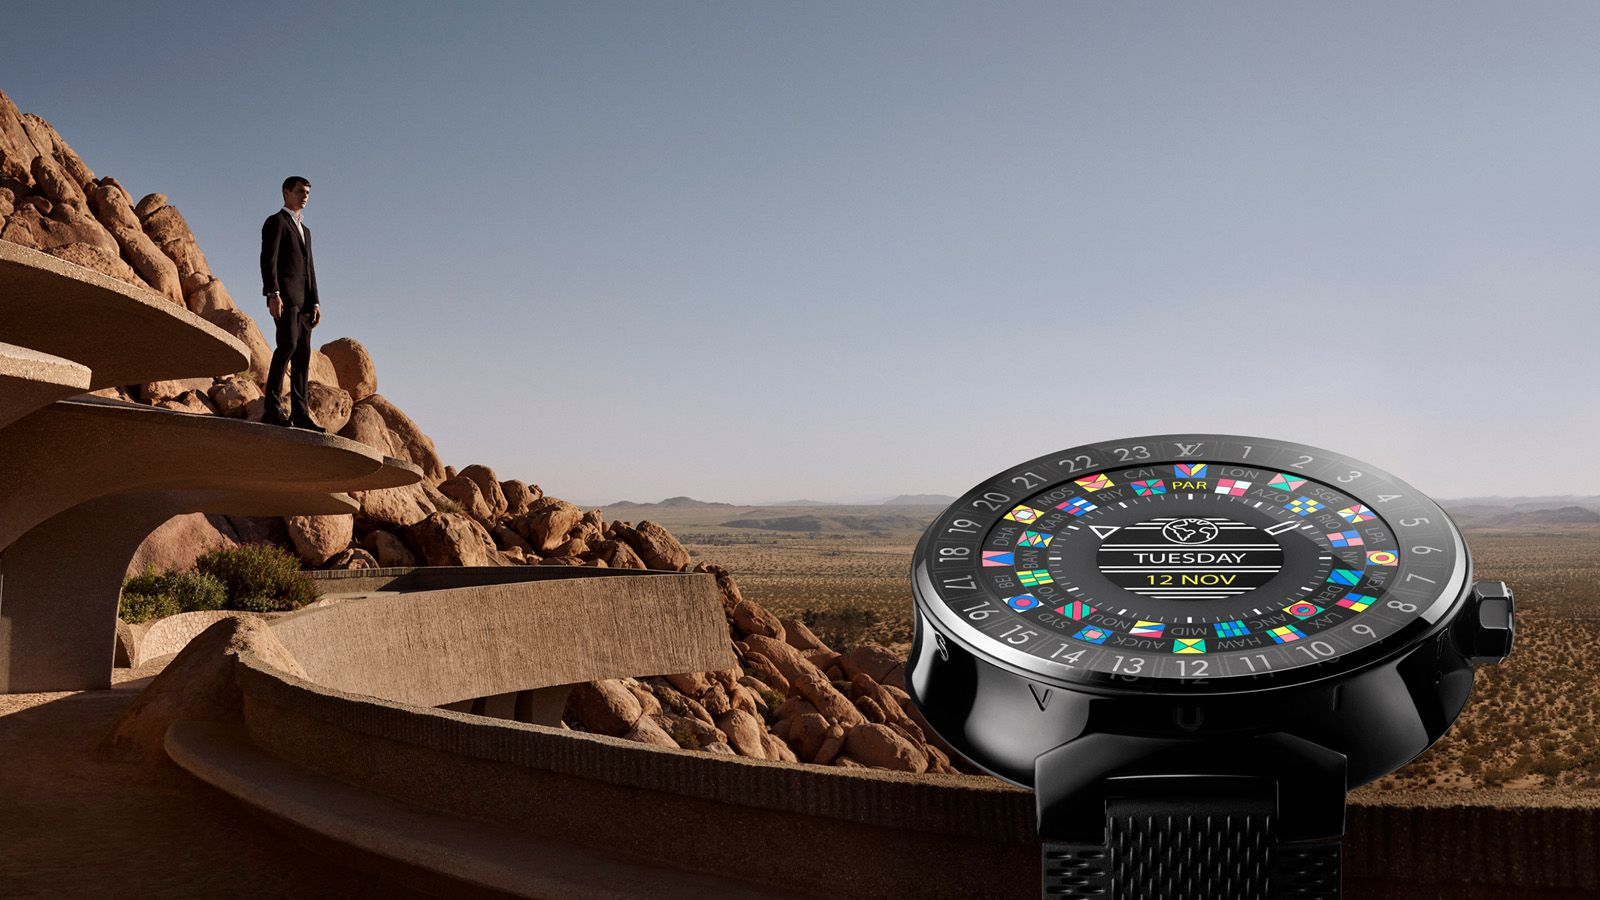 Louis Vuitton is the Latest Luxury Fashion Brand to Jump on the Android Wear Train